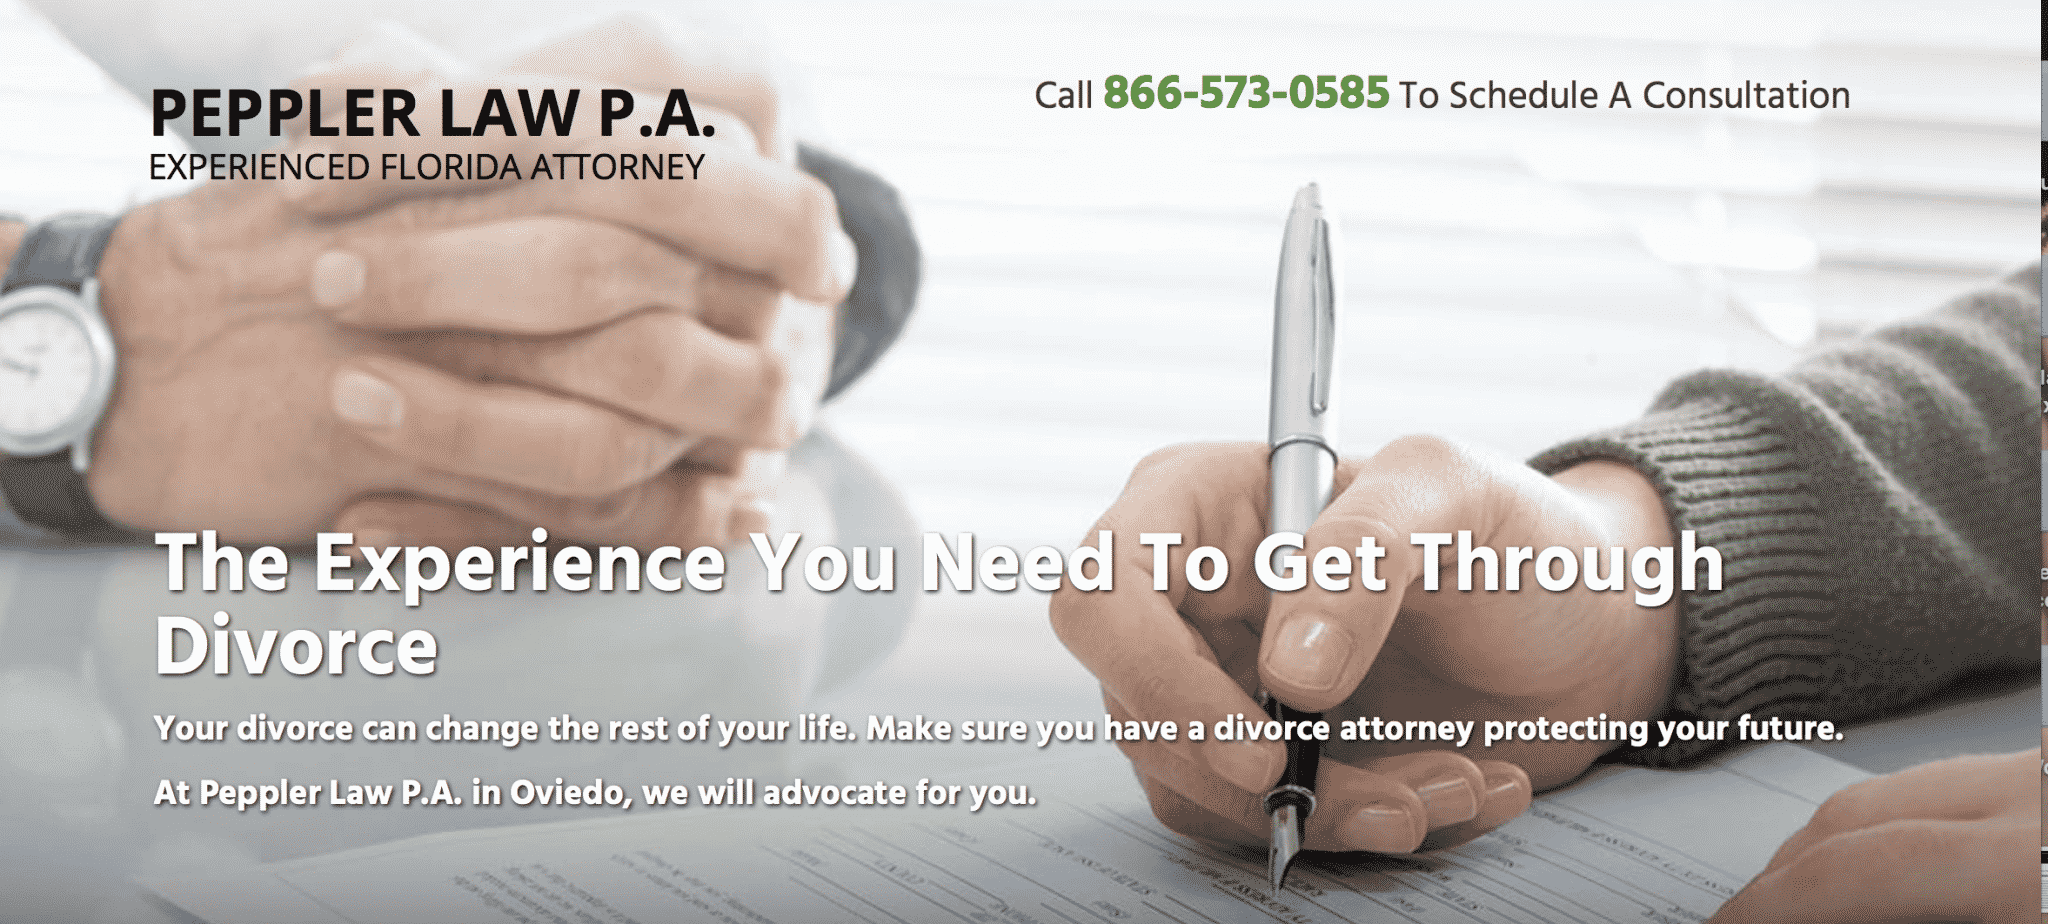 lawyer landing pages